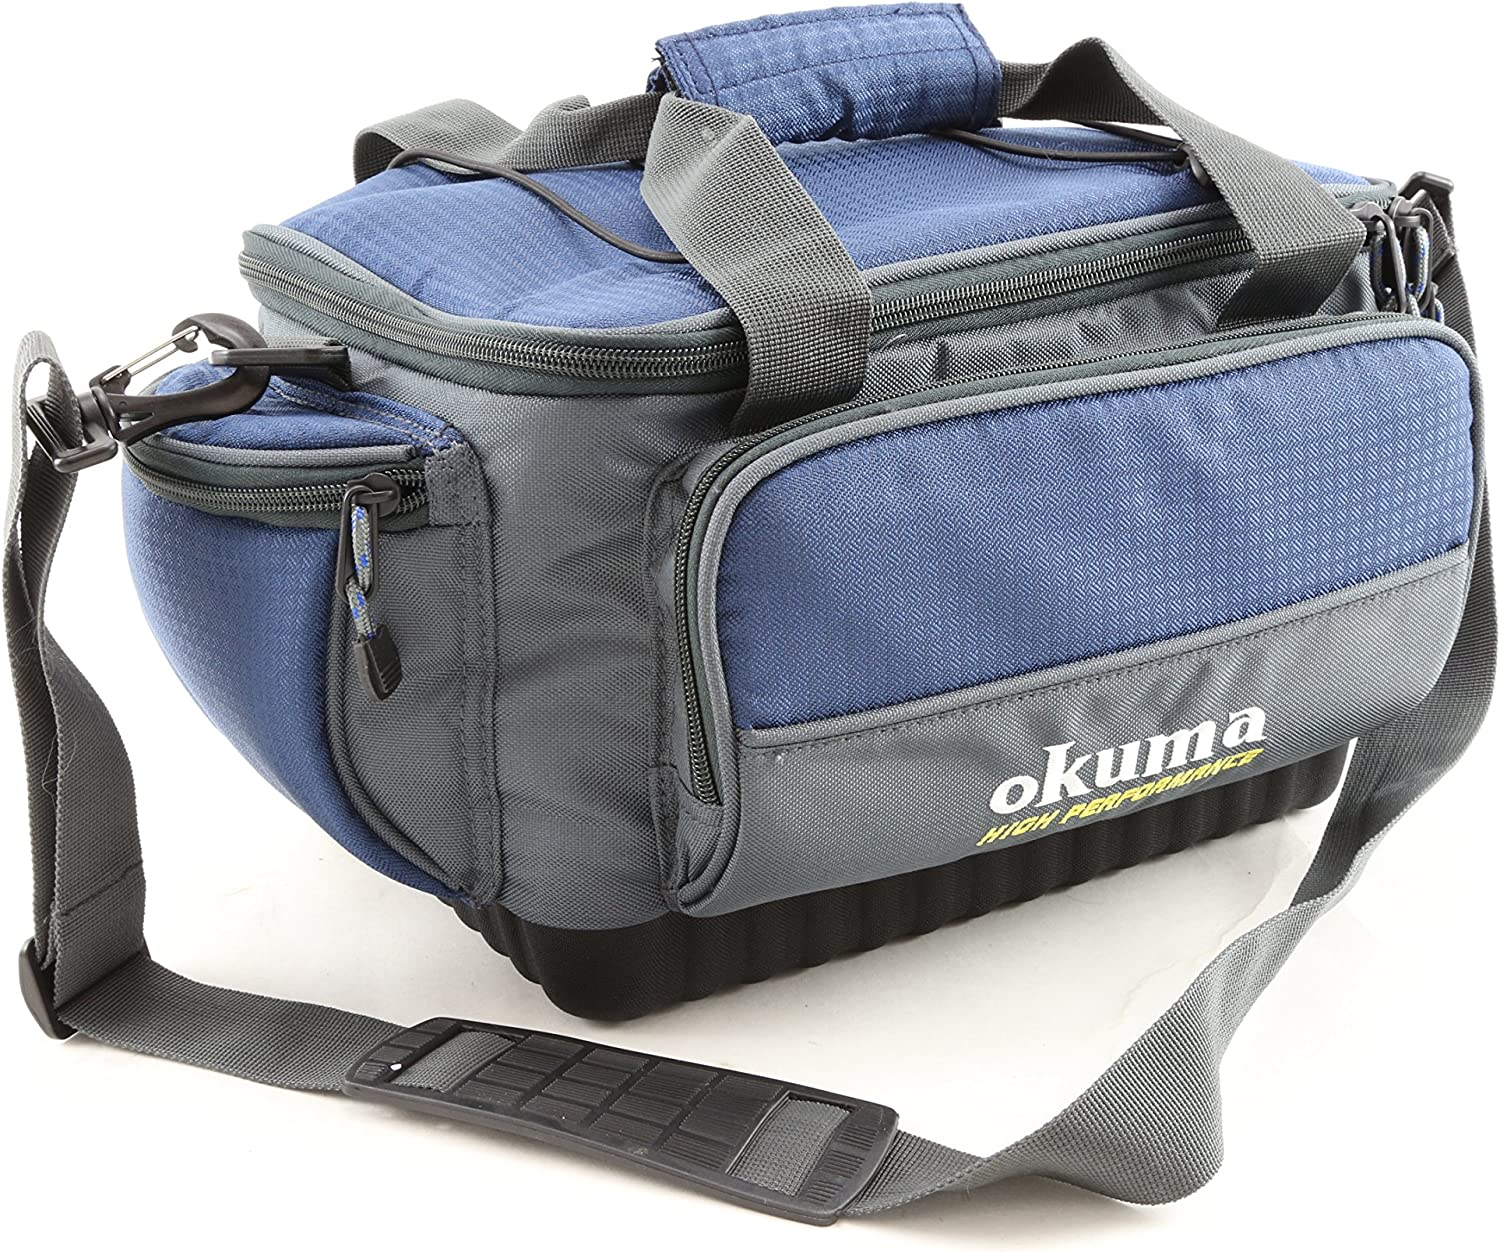 Okuma Fishing Tackle Soft Sided Tackle Bag